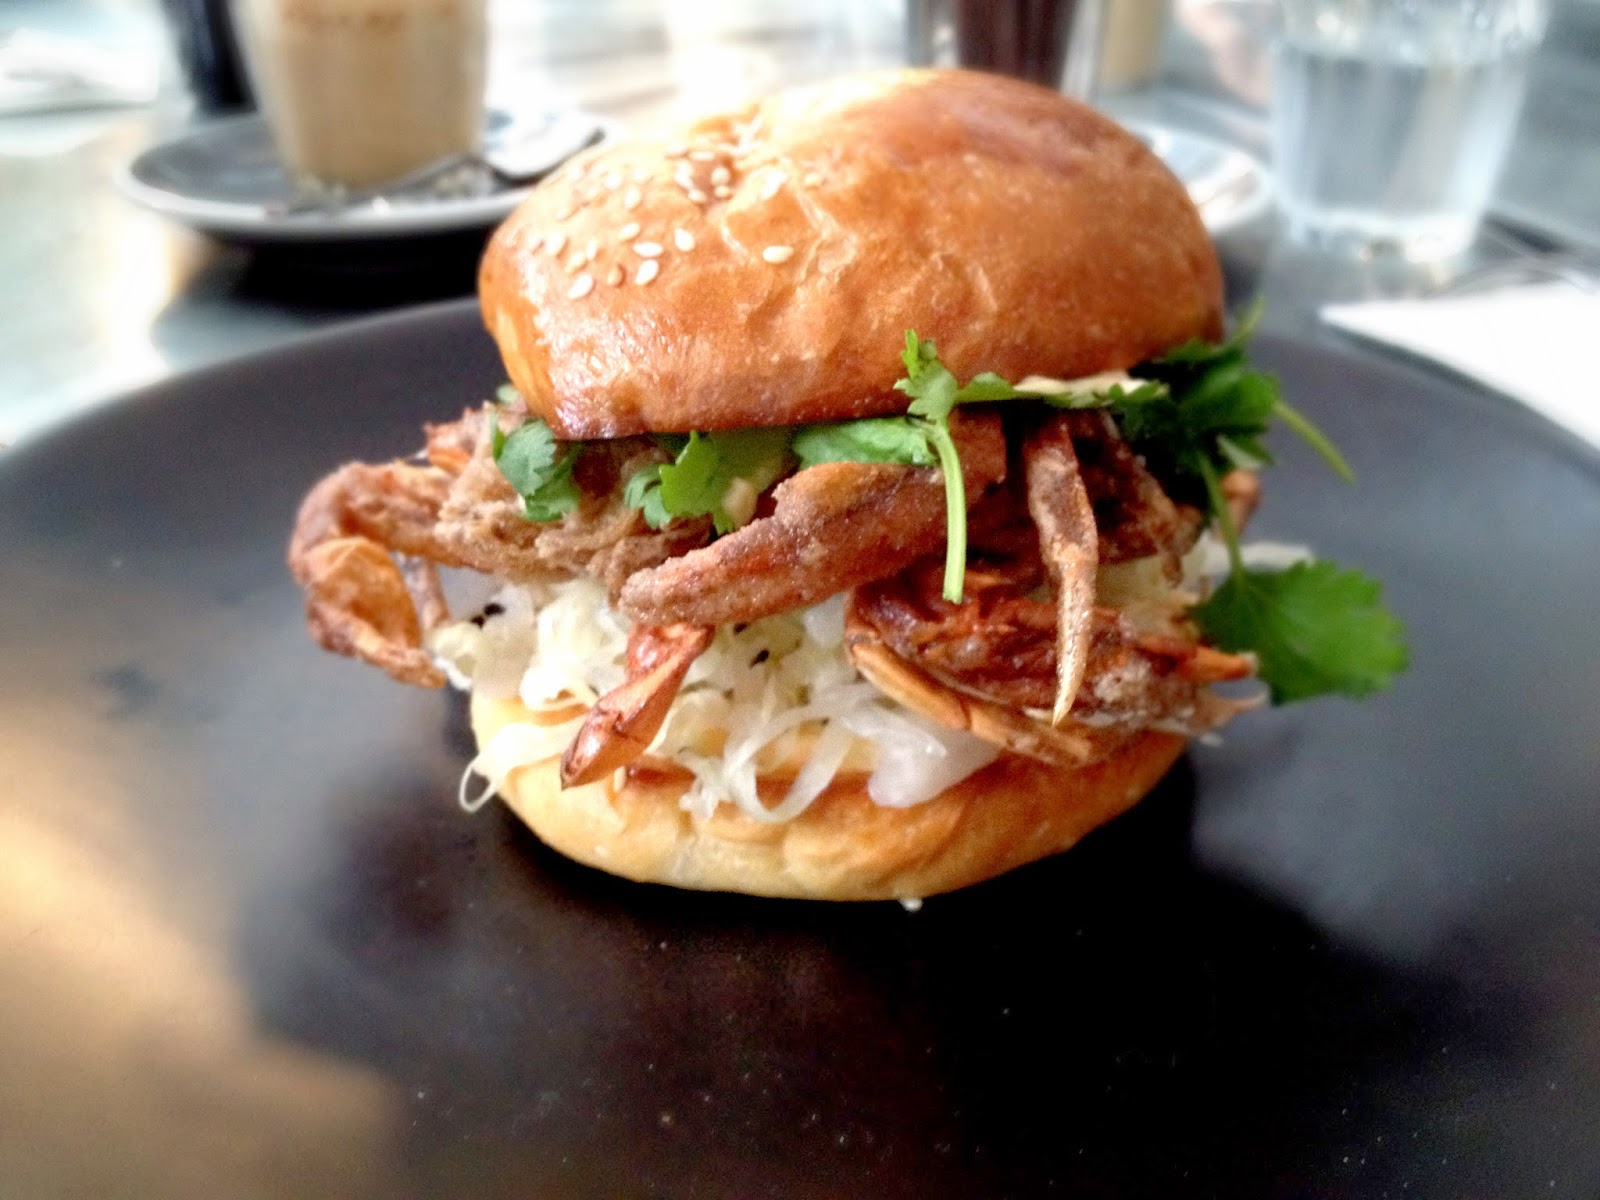 and this is the famous soft shell crab burger constructed